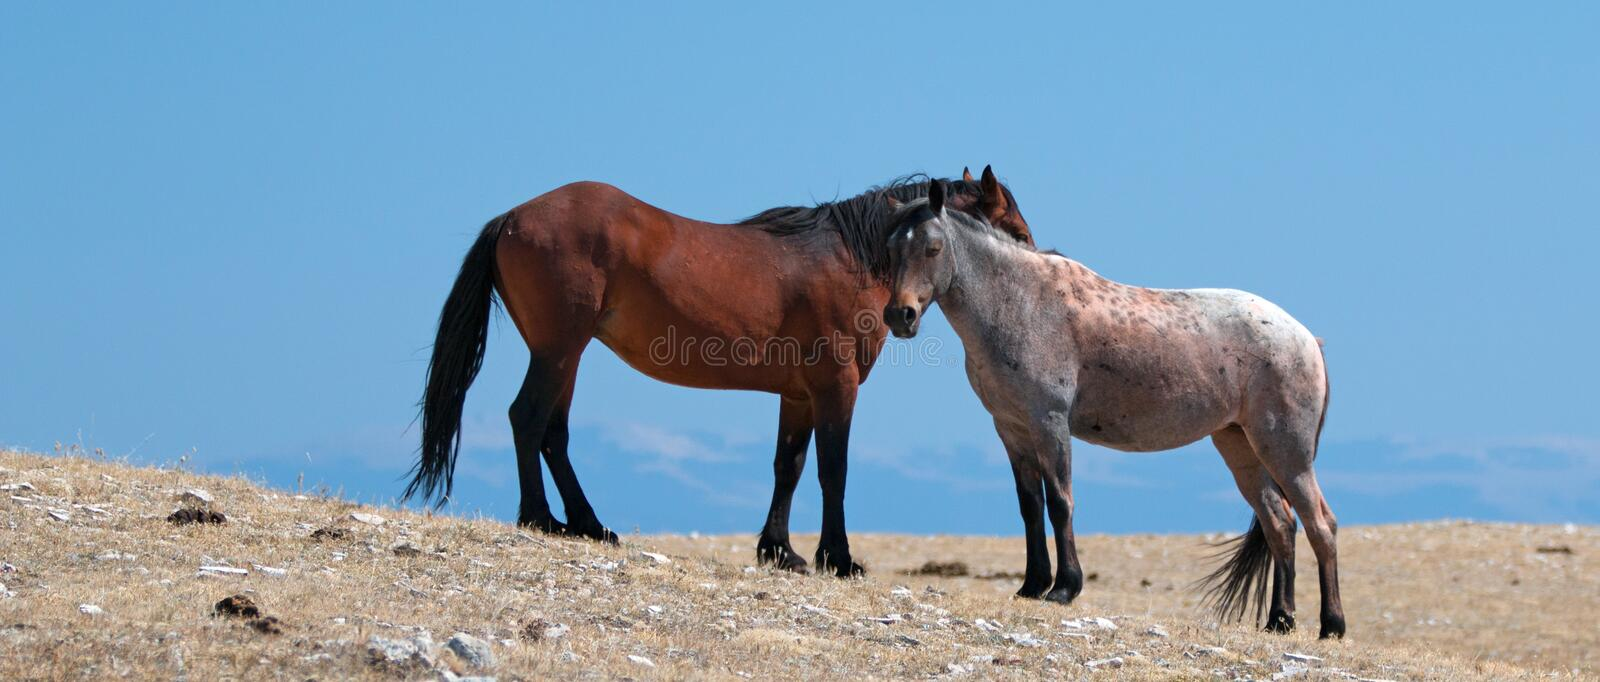 Wild Horse Mustang Bay Band Stallion with his Strawberry Red Roan Mare on Sykes Ridge in the Pryor Mountains Wild Horse Range. Wild Feral Horse Mustang Bay Band royalty free stock photo